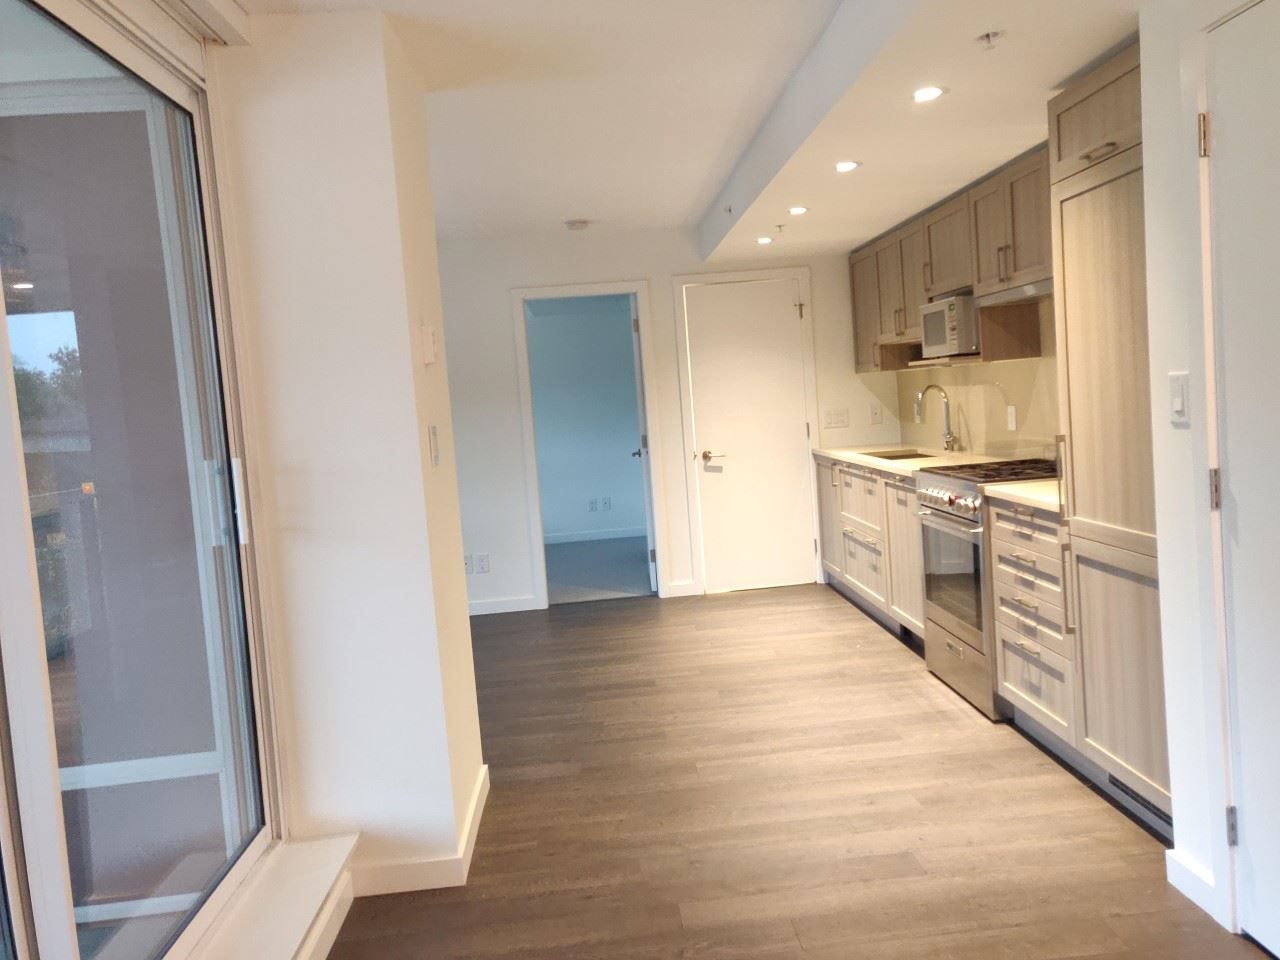 """Photo 4: Photos: 205 5515 BOUNDARY Road in Vancouver: Collingwood VE Condo for sale in """"WALL CENTER CETNRAL PARK"""" (Vancouver East)  : MLS®# R2516109"""